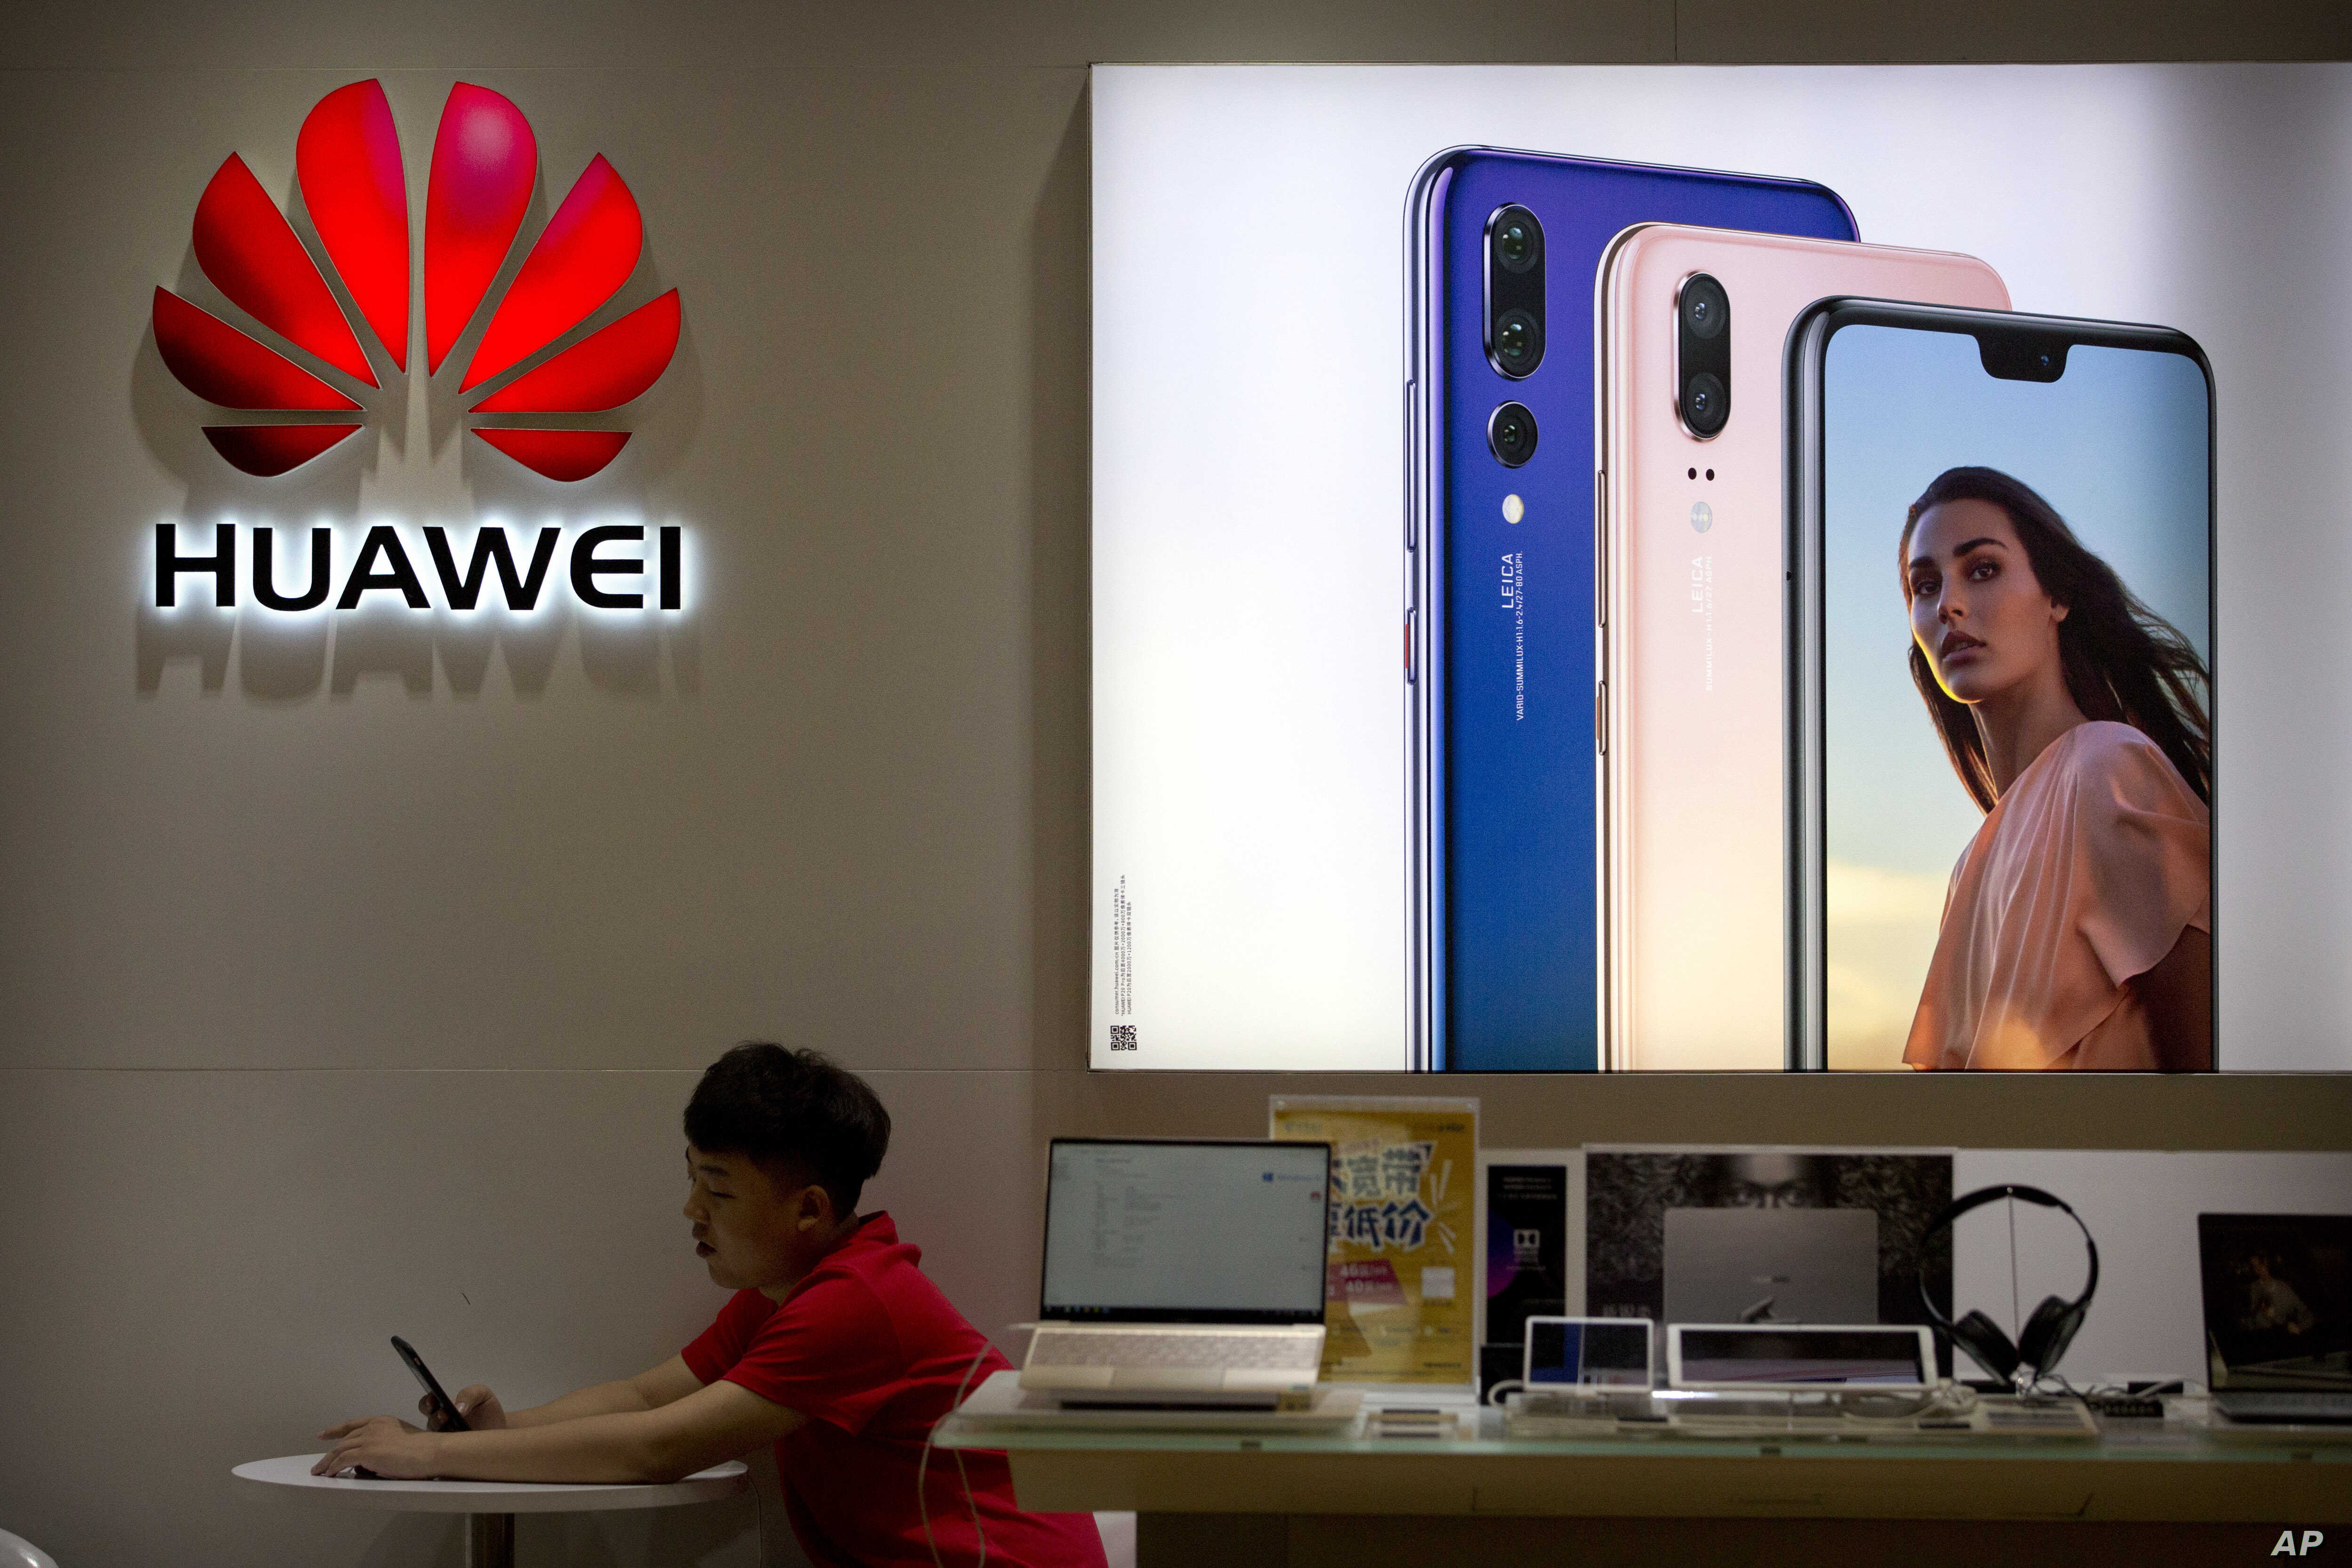 A sales clerk looks at his smartphone in a Huawei store at a shopping mall in Beijing Wednesday, July 4, 2018.